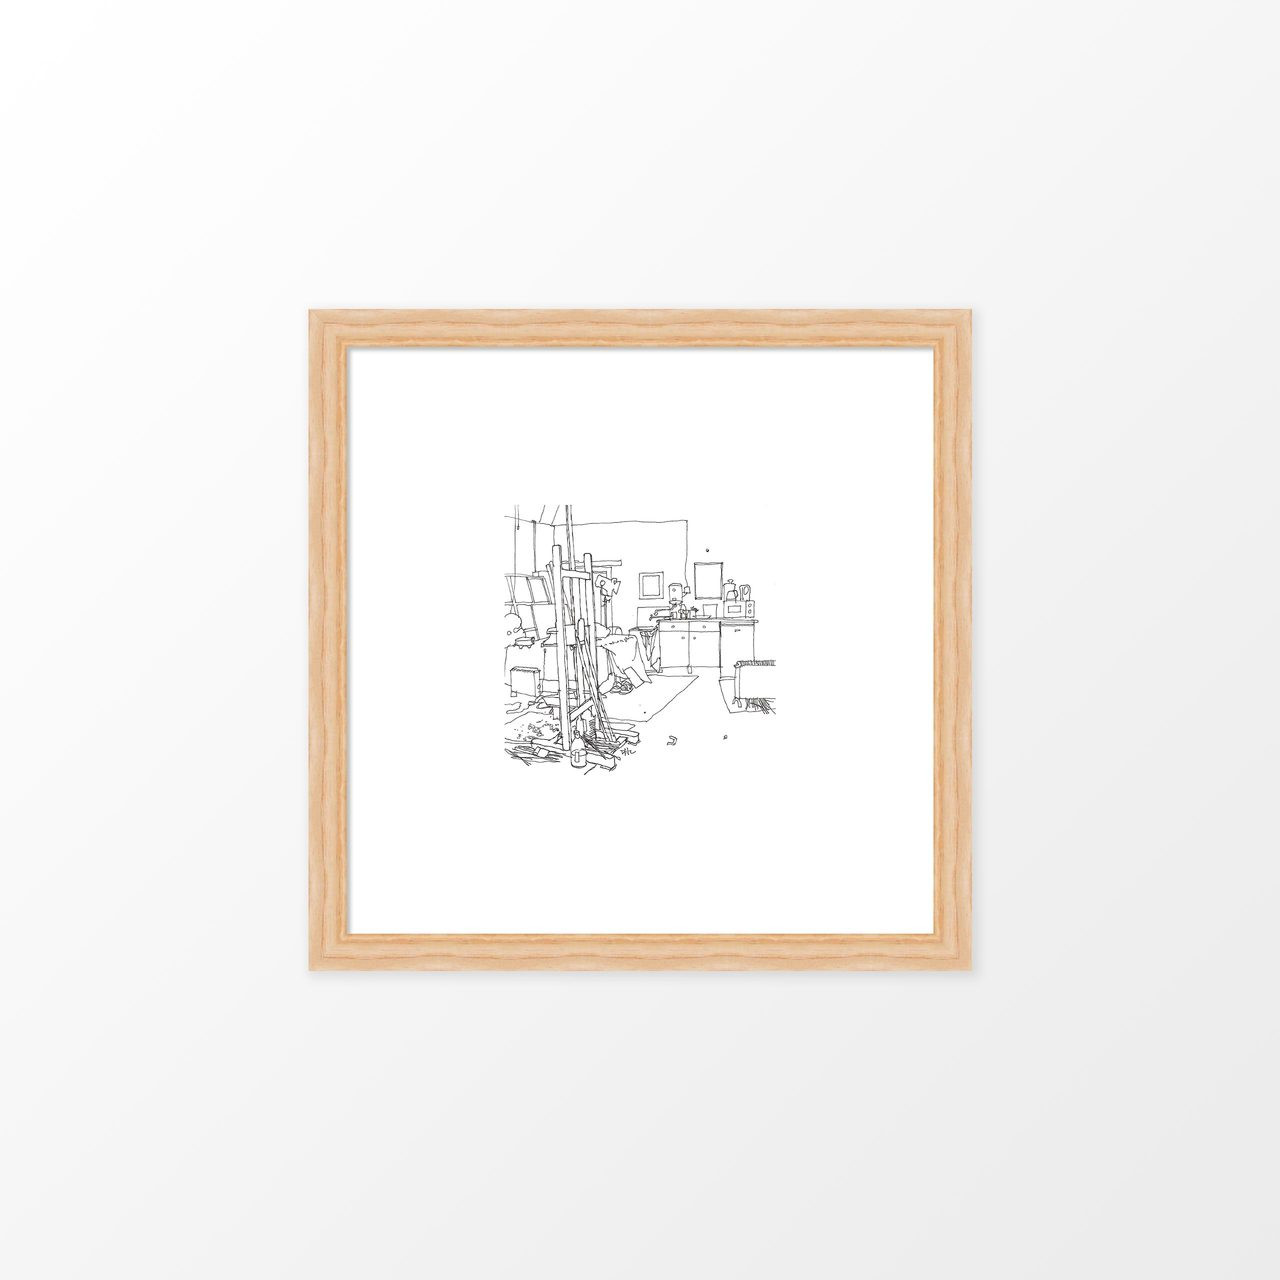 'Studio' Art Print (ink drawing by David Cobley) from The Printed Home